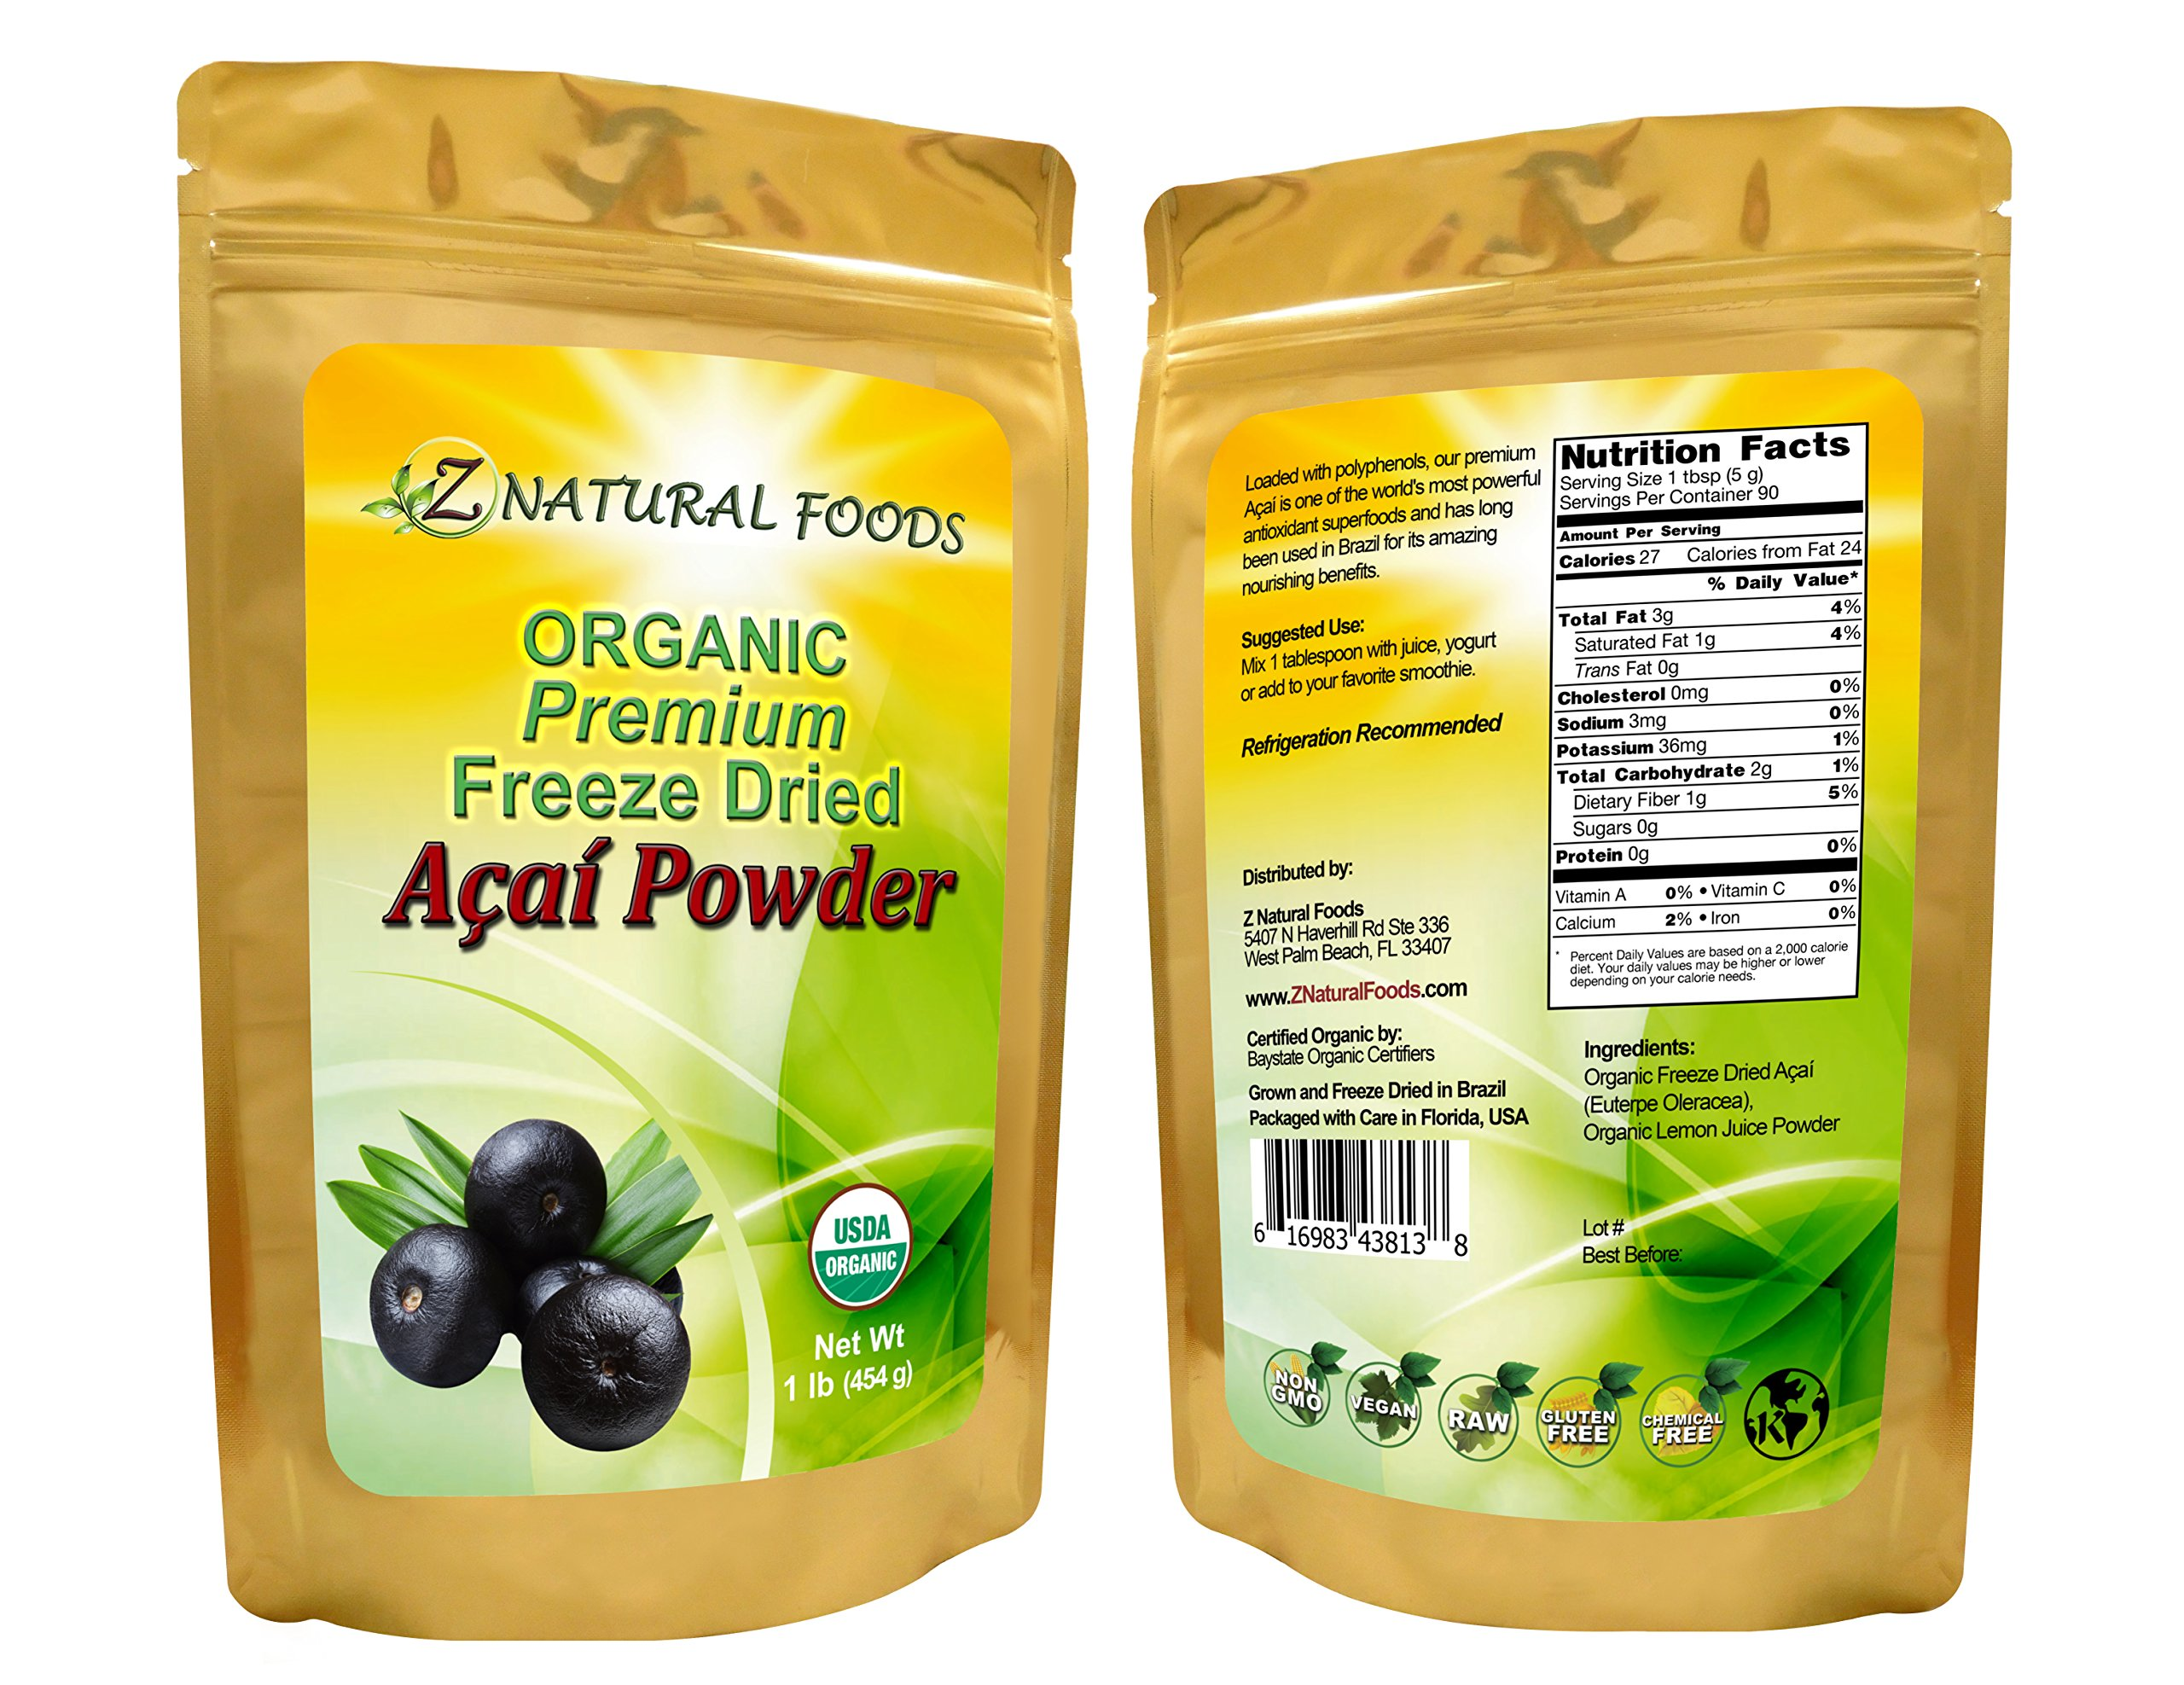 Fresh, Organic Raw Acai Berry Powder, Superfood - Antioxidant, Premium, Non-GMO, Freeze-Dried, 16 oz (1 lb)